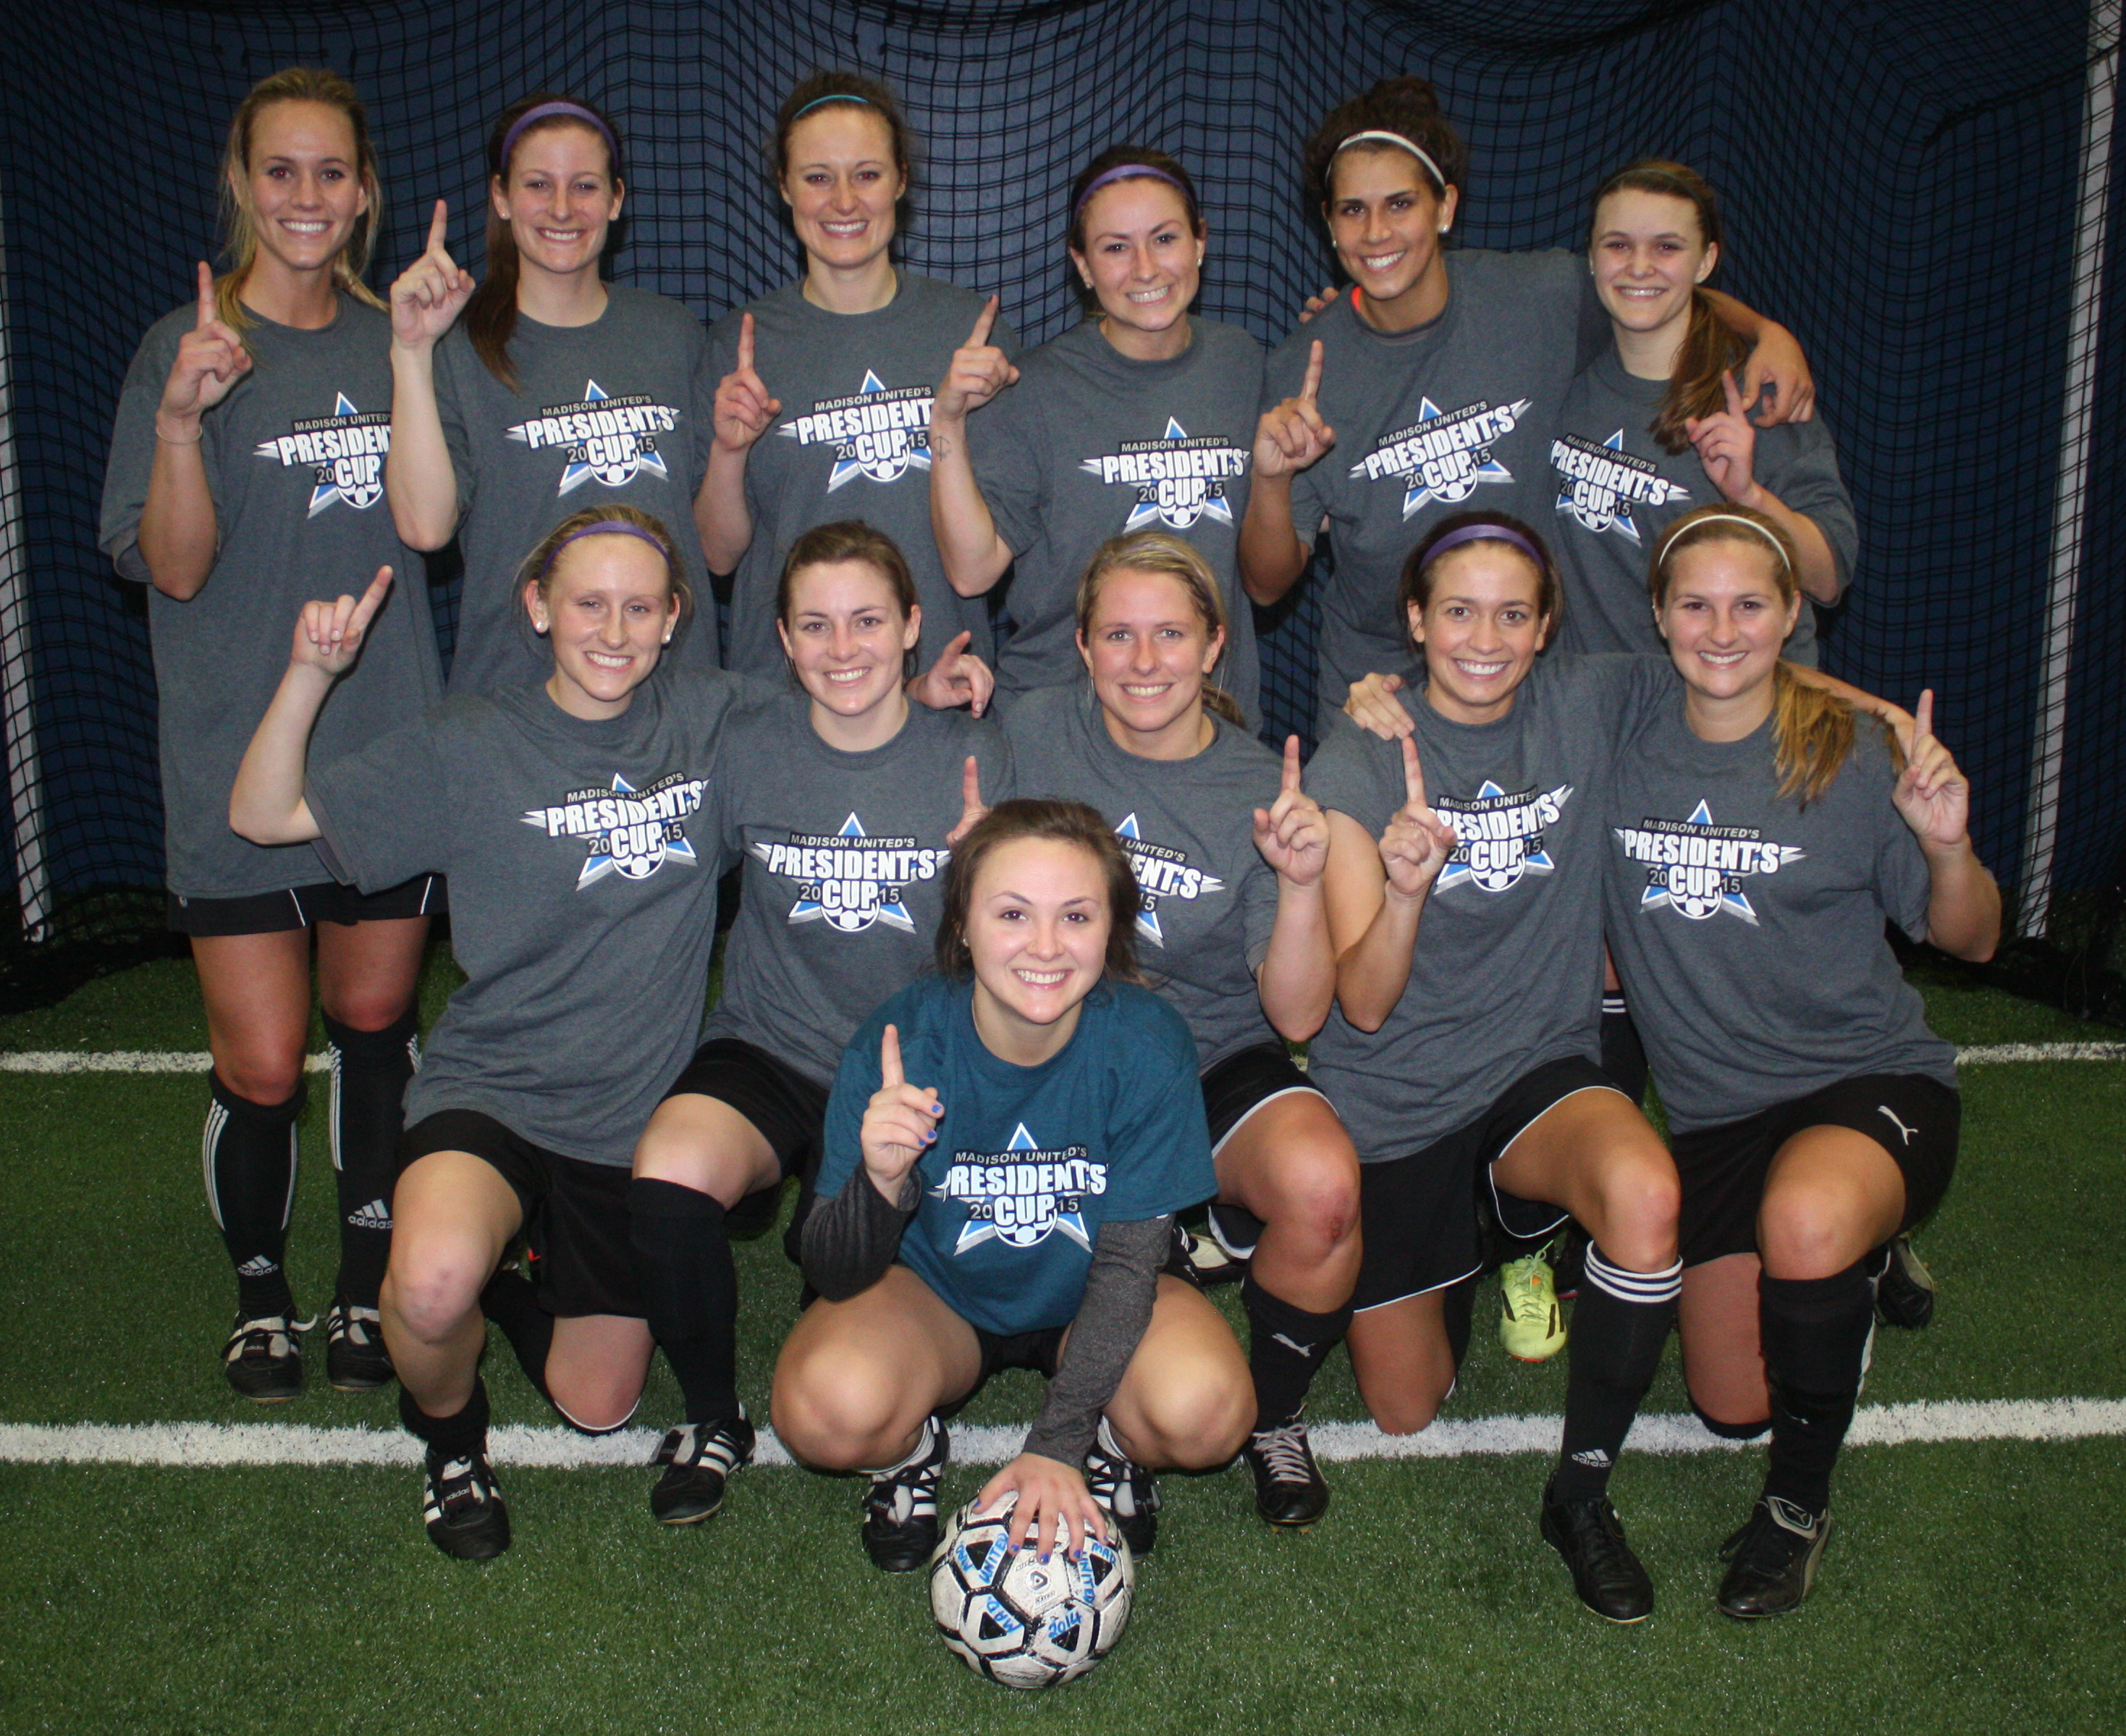 2015 President's Cup Women's Open champions: CRUSA